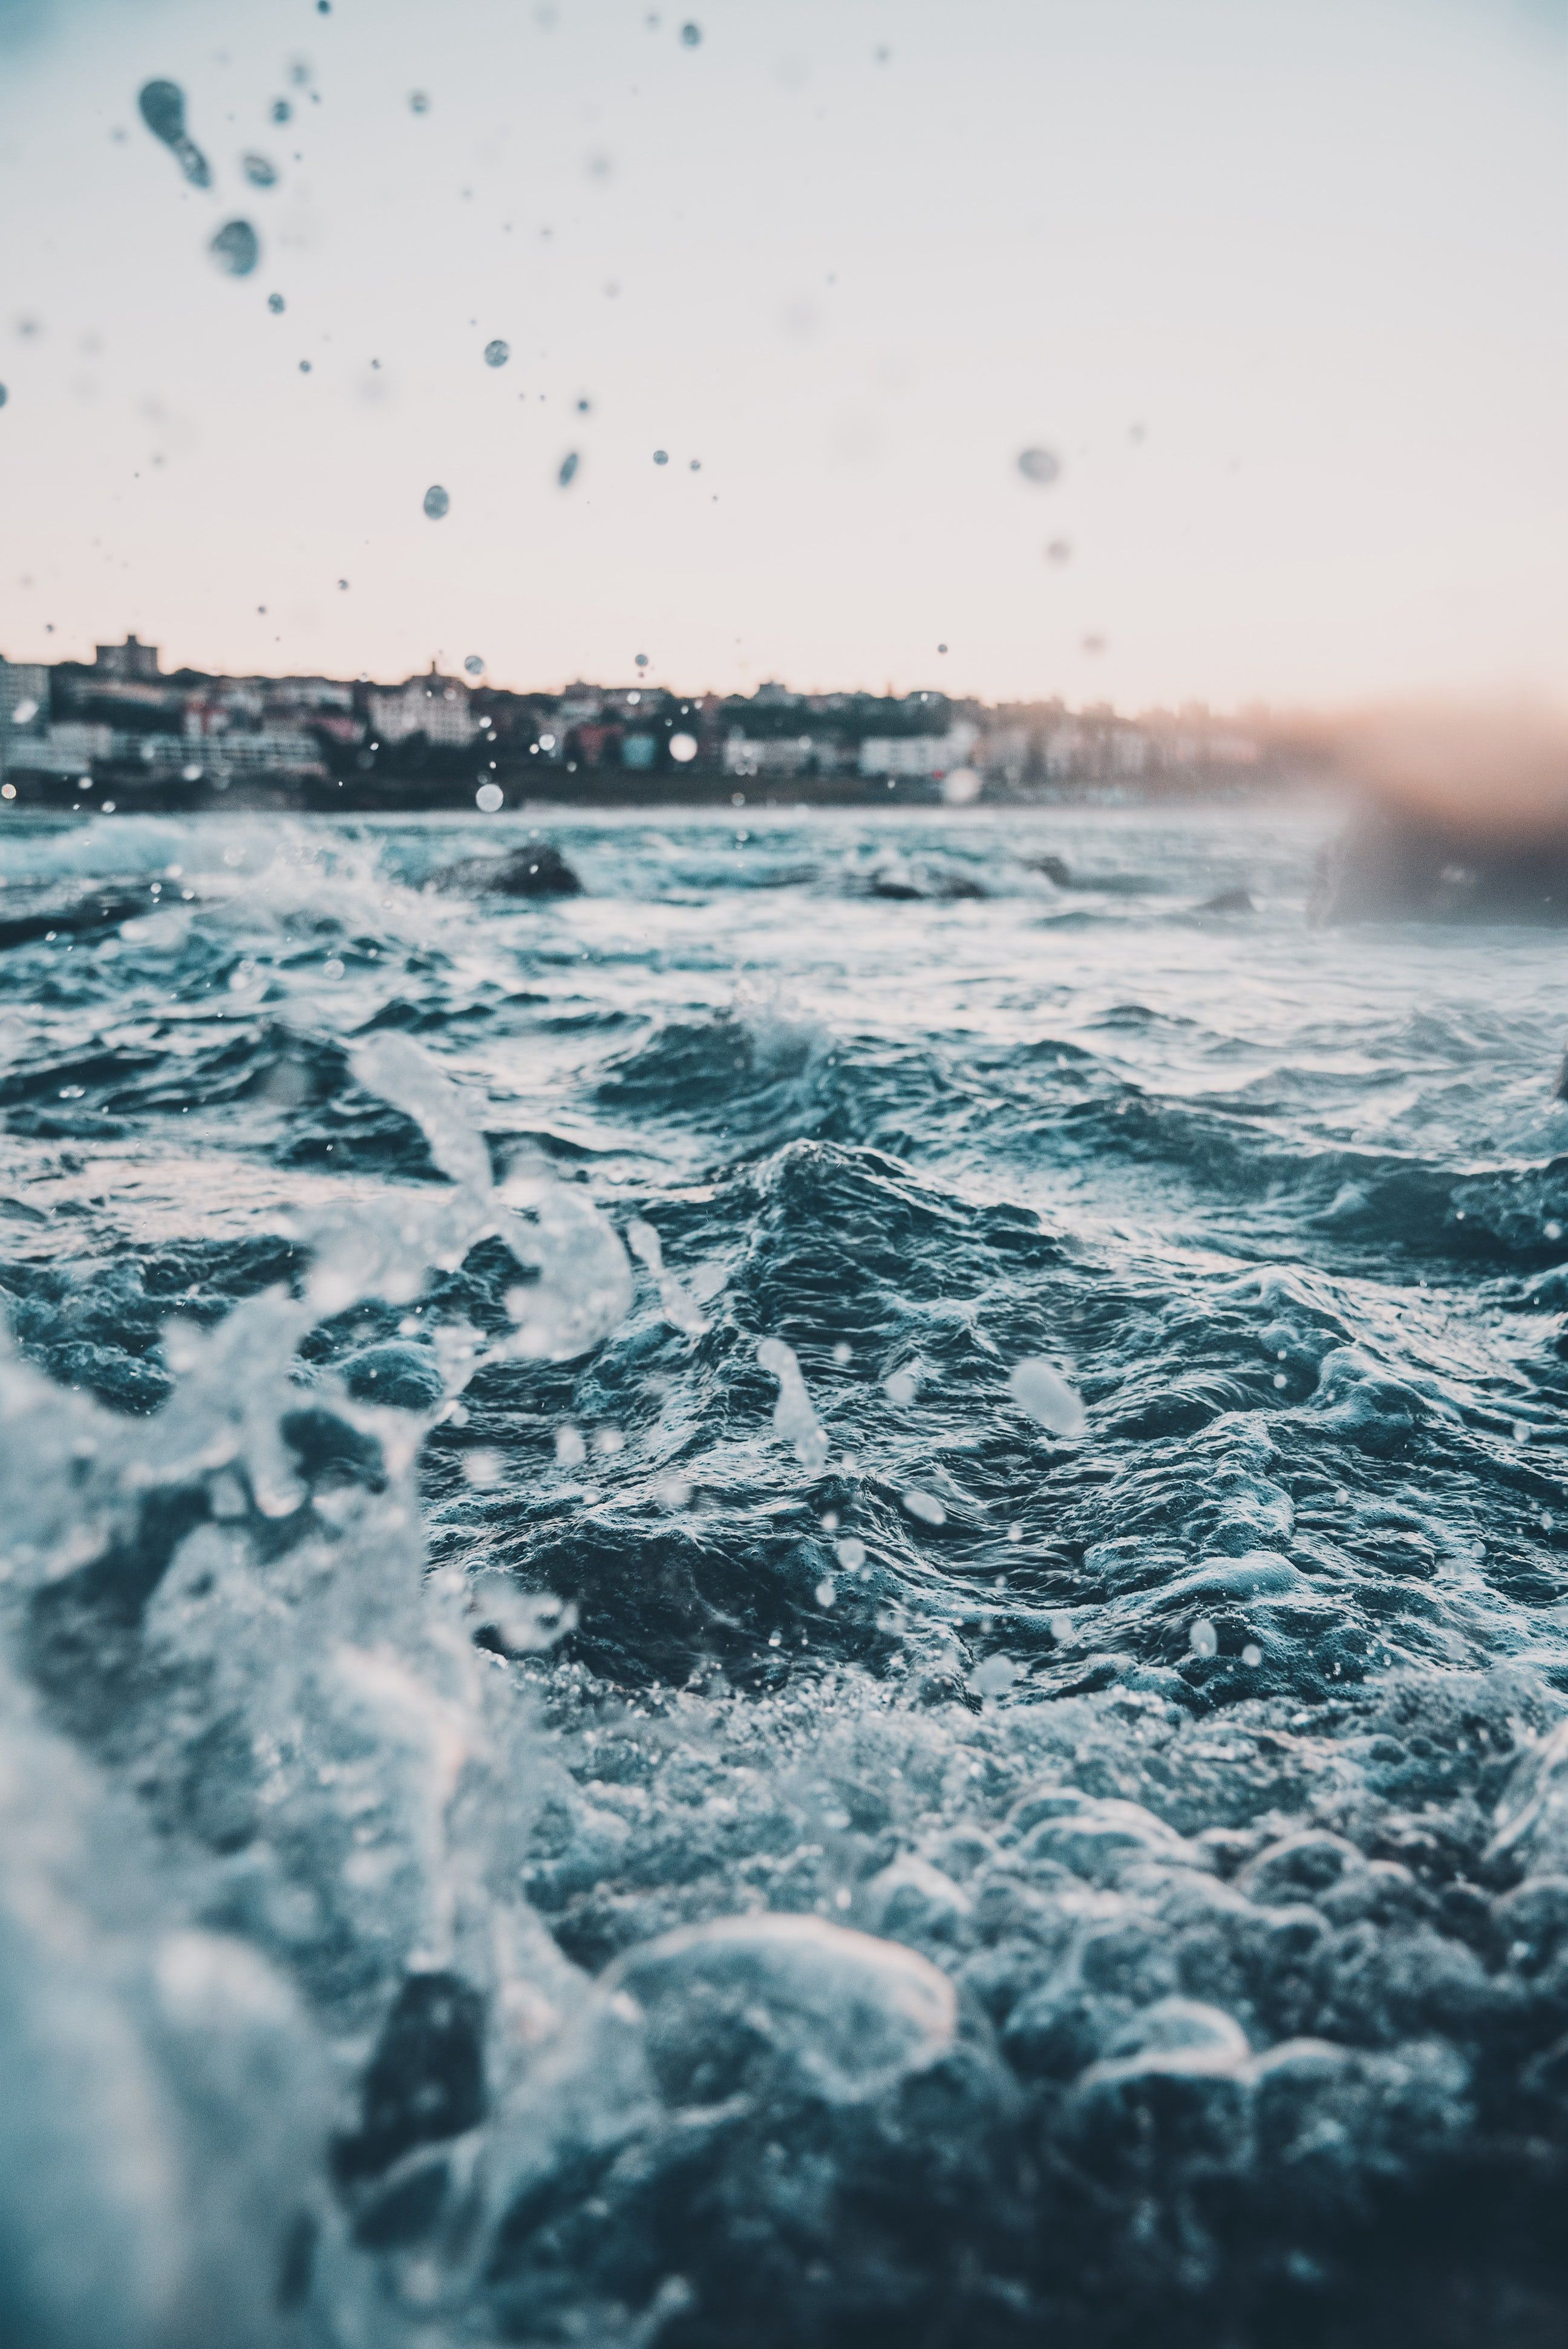 Pin By Elizabeth Stephenson On Photography Ocean Photography Ocean Wallpaper Ocean Vibes